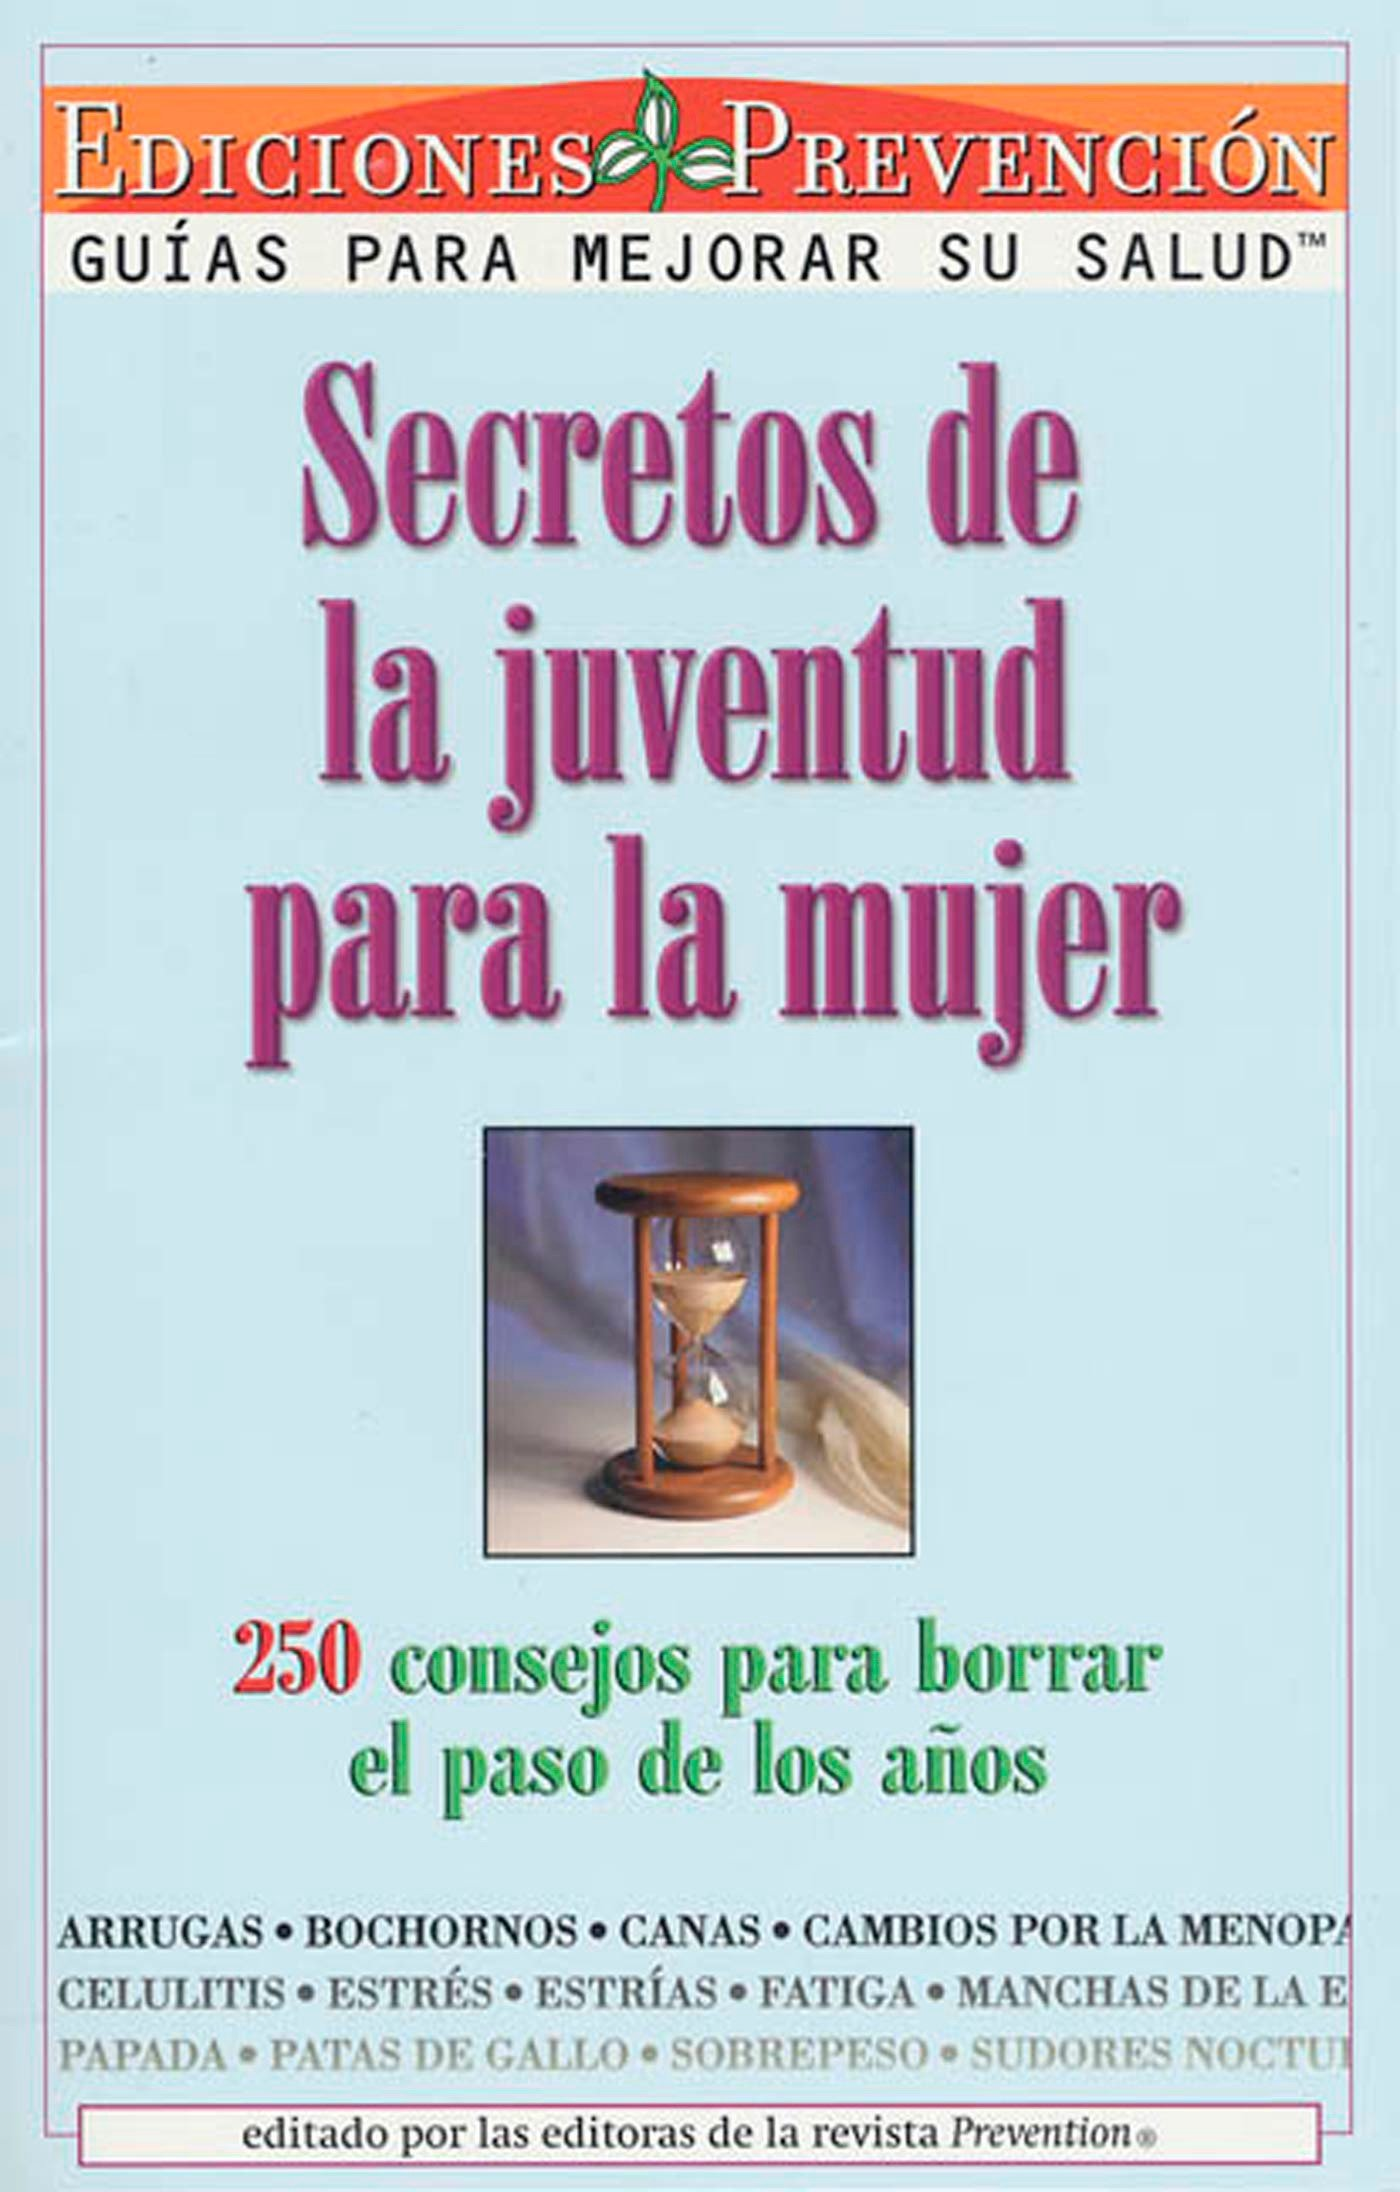 Secretos De La Juventud Para La Mujer (Youth Secrets for Women): The Editors of Prevention Magazine, Abel Delgado, The Editors of Prevention Magazine: ...